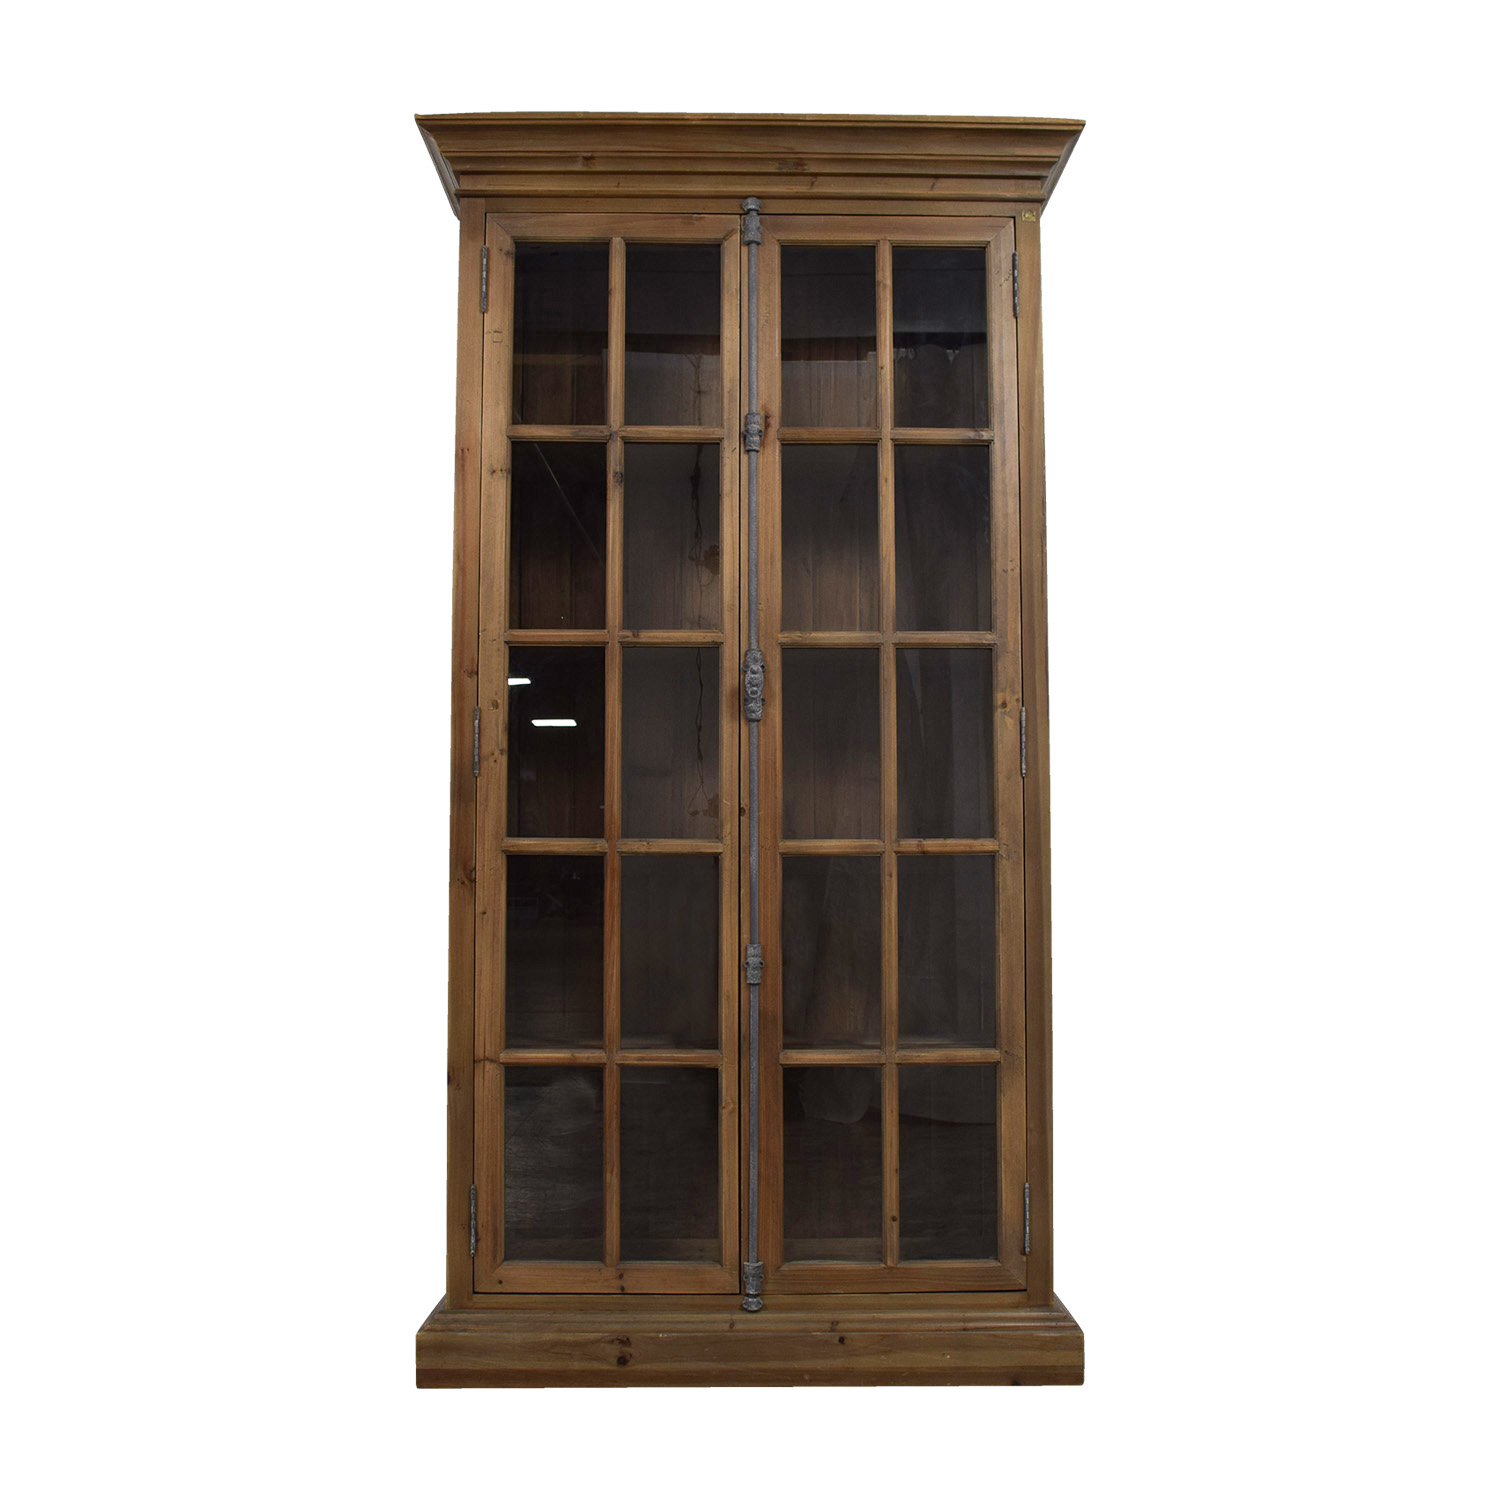 Chorus Theory Chorus Theory Glass Armoire used